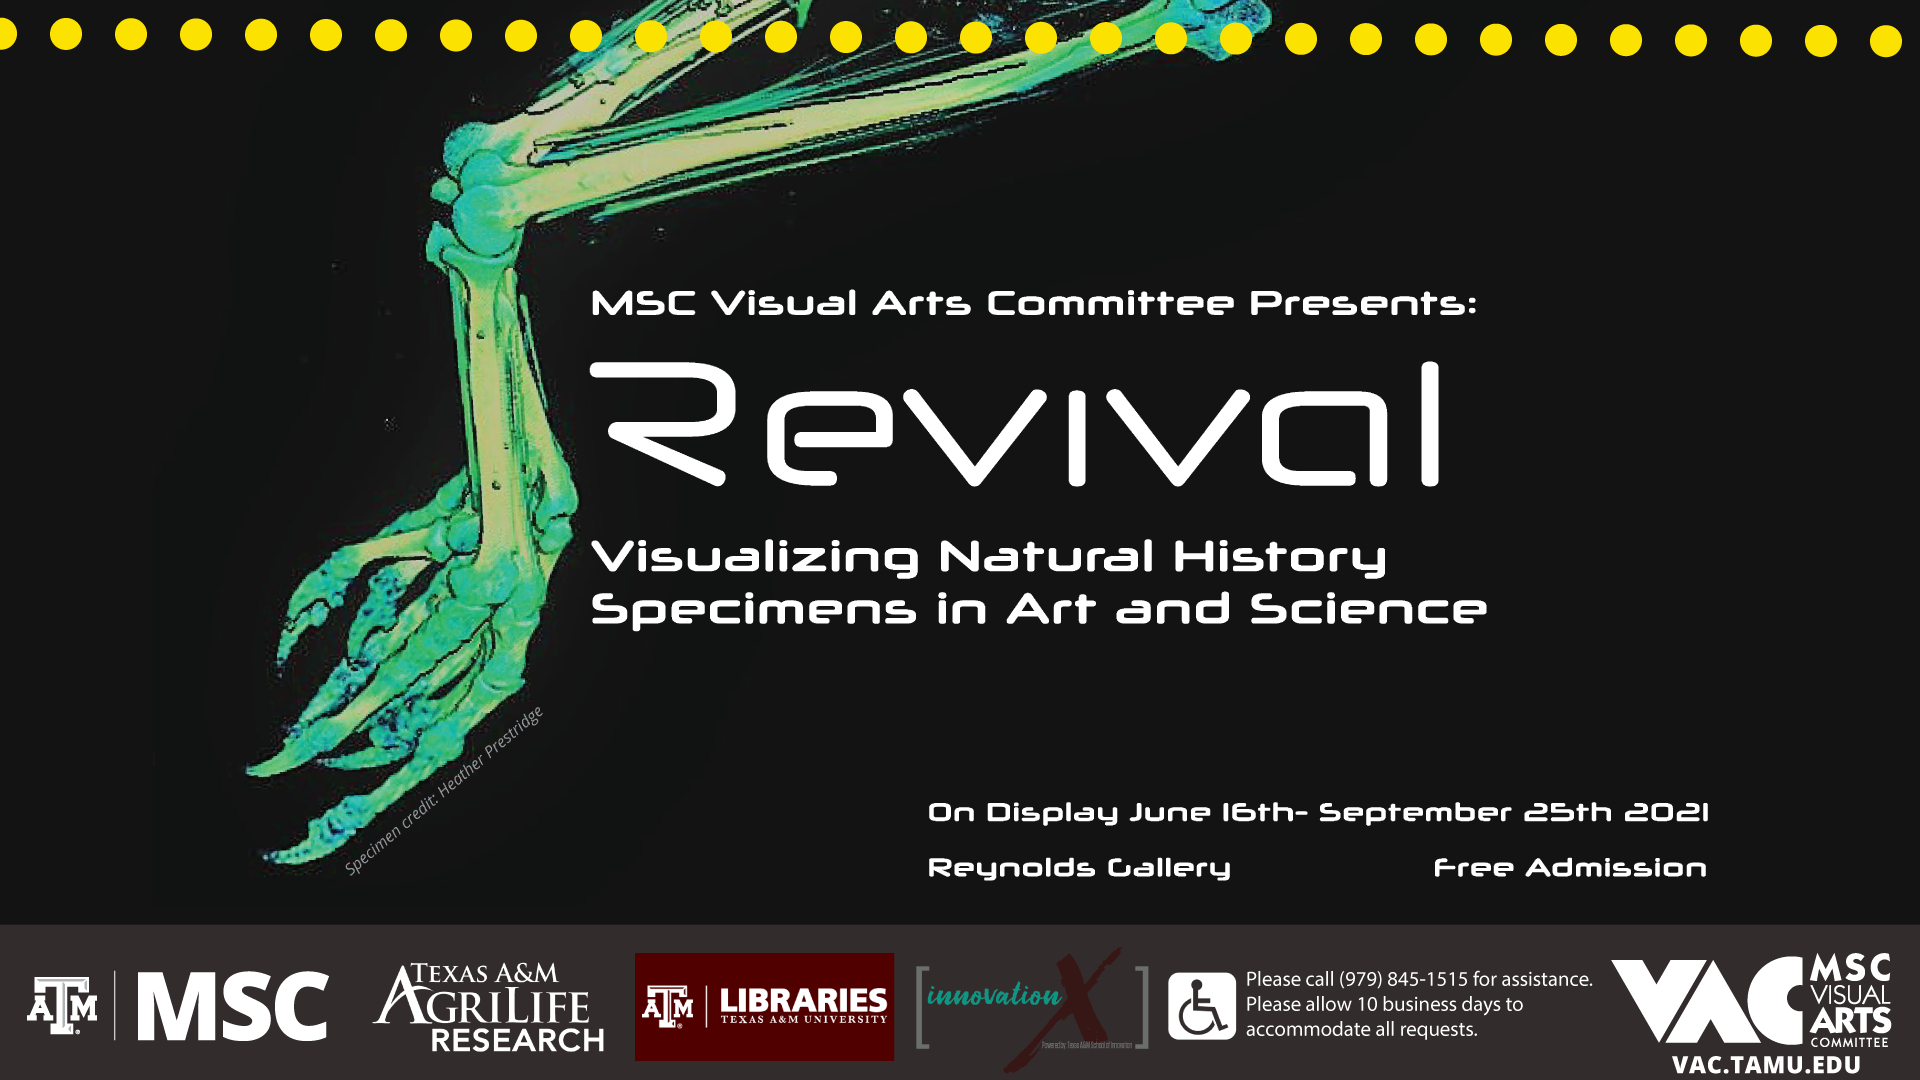 MSC Visual Arts Committee Presents: Revival, Visualizing Natural History Specimens in Art and Science. On Display June 16th to September 25th. 2021 at Reynolds Gallery. Free-Admission. Please call 979.845.1515 for assistance. Please allow 10 business days to accommodate all requests.